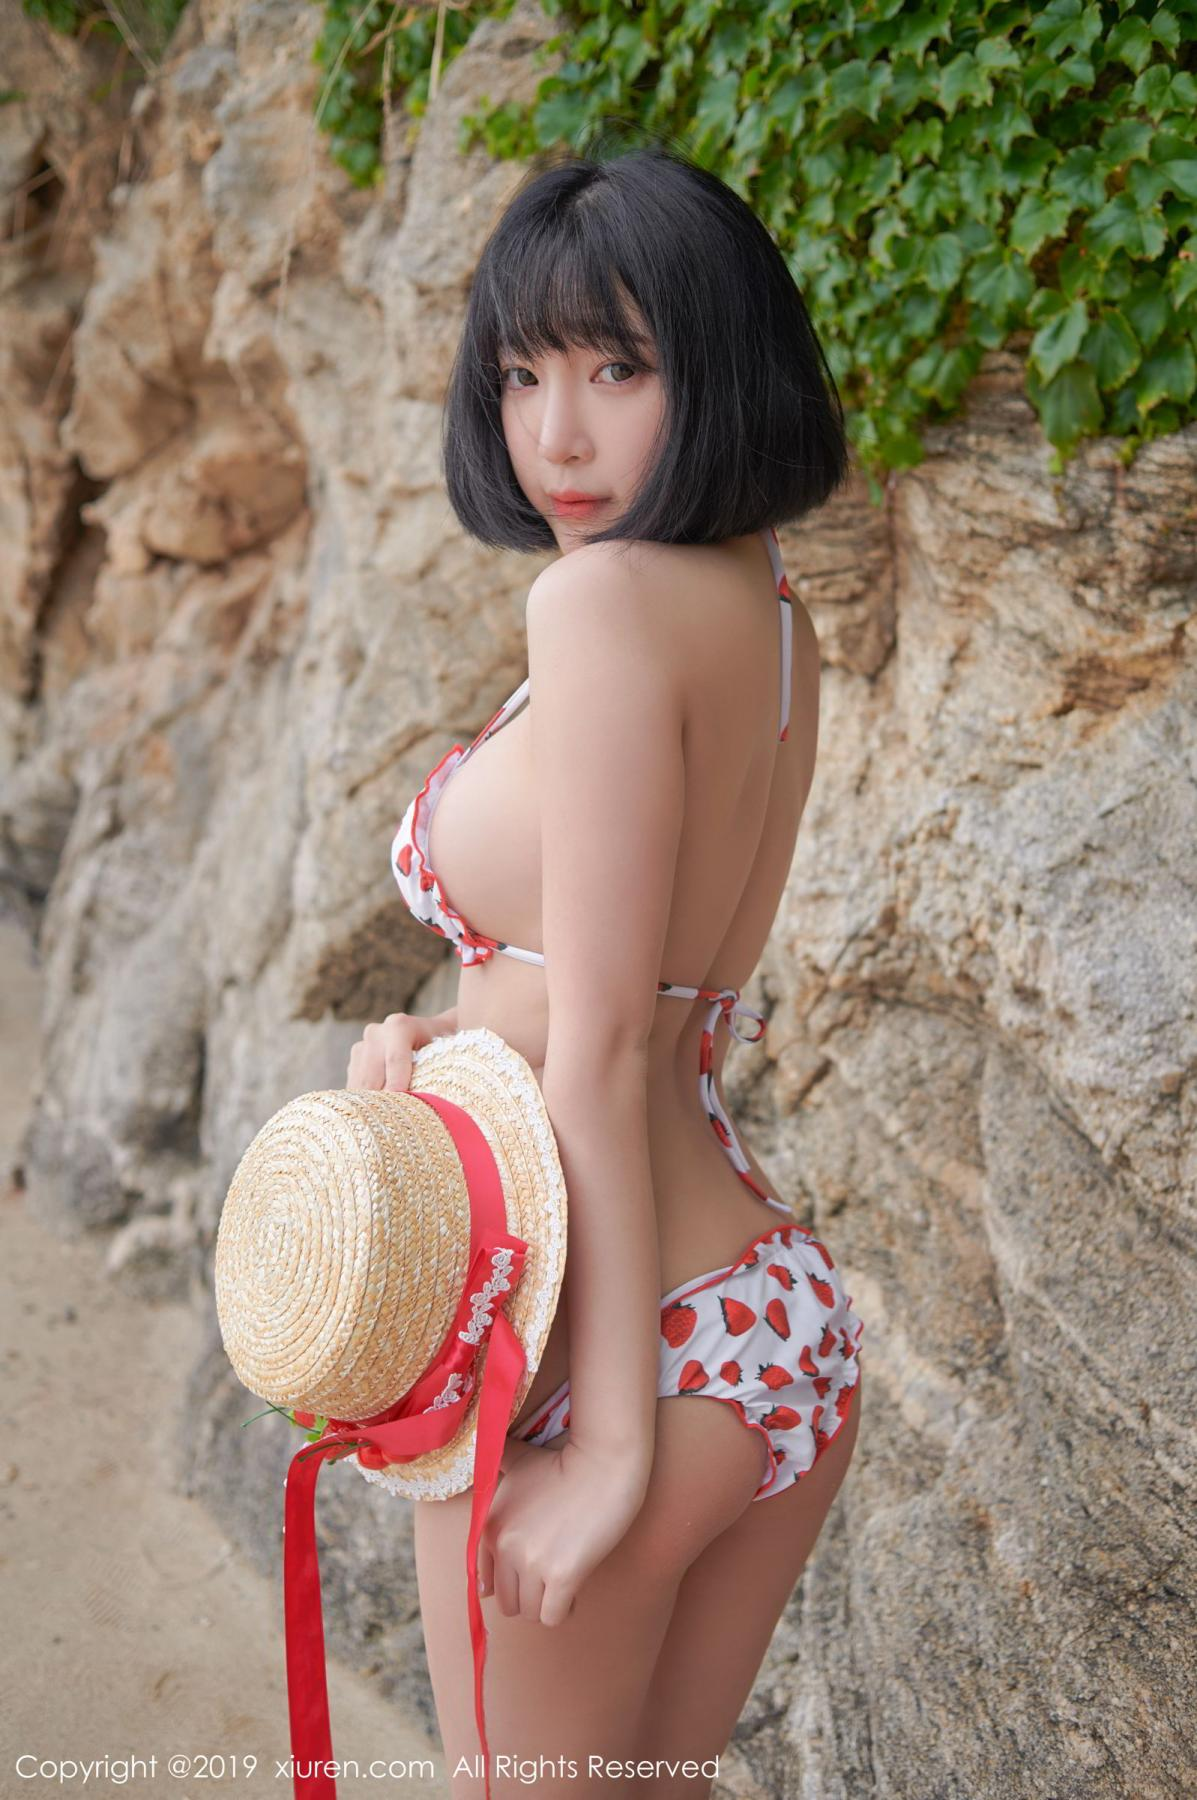 [XiuRen] Vol.1611 Model Qing Qing 29P, Beach, Bikini, Kang In Kyung, Xiuren